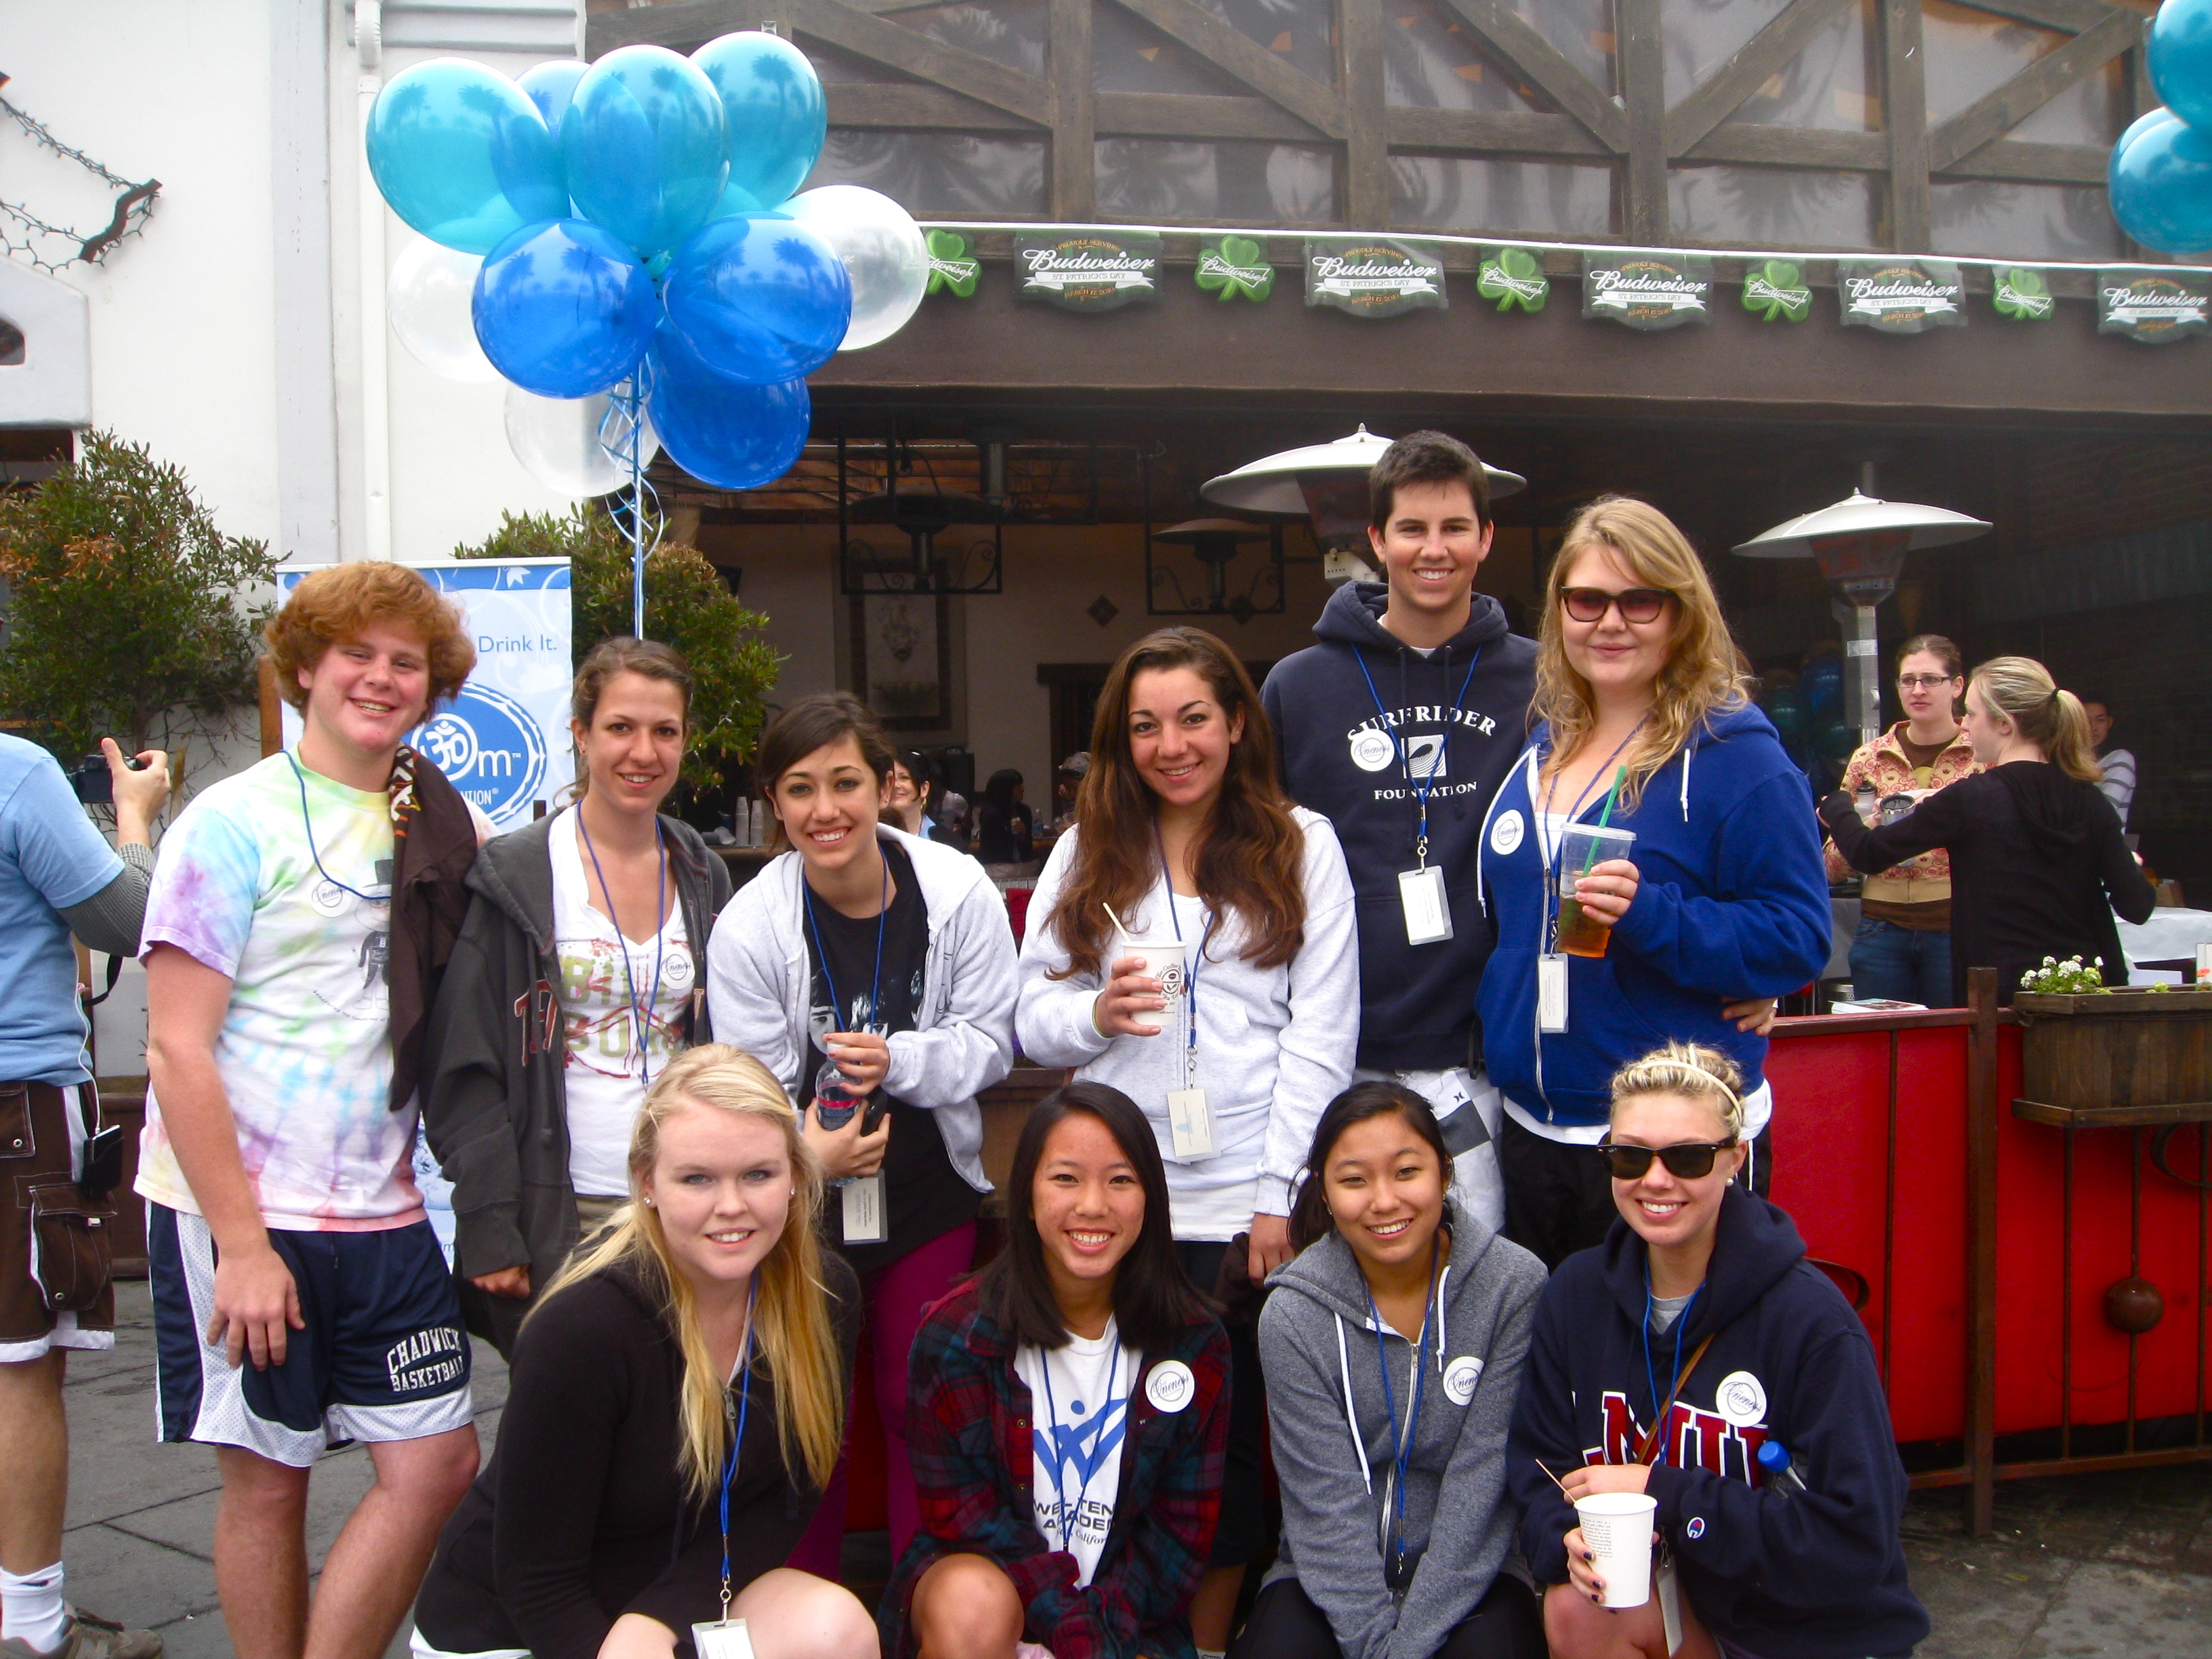 Lee Oneness Foundation at Walk for Water